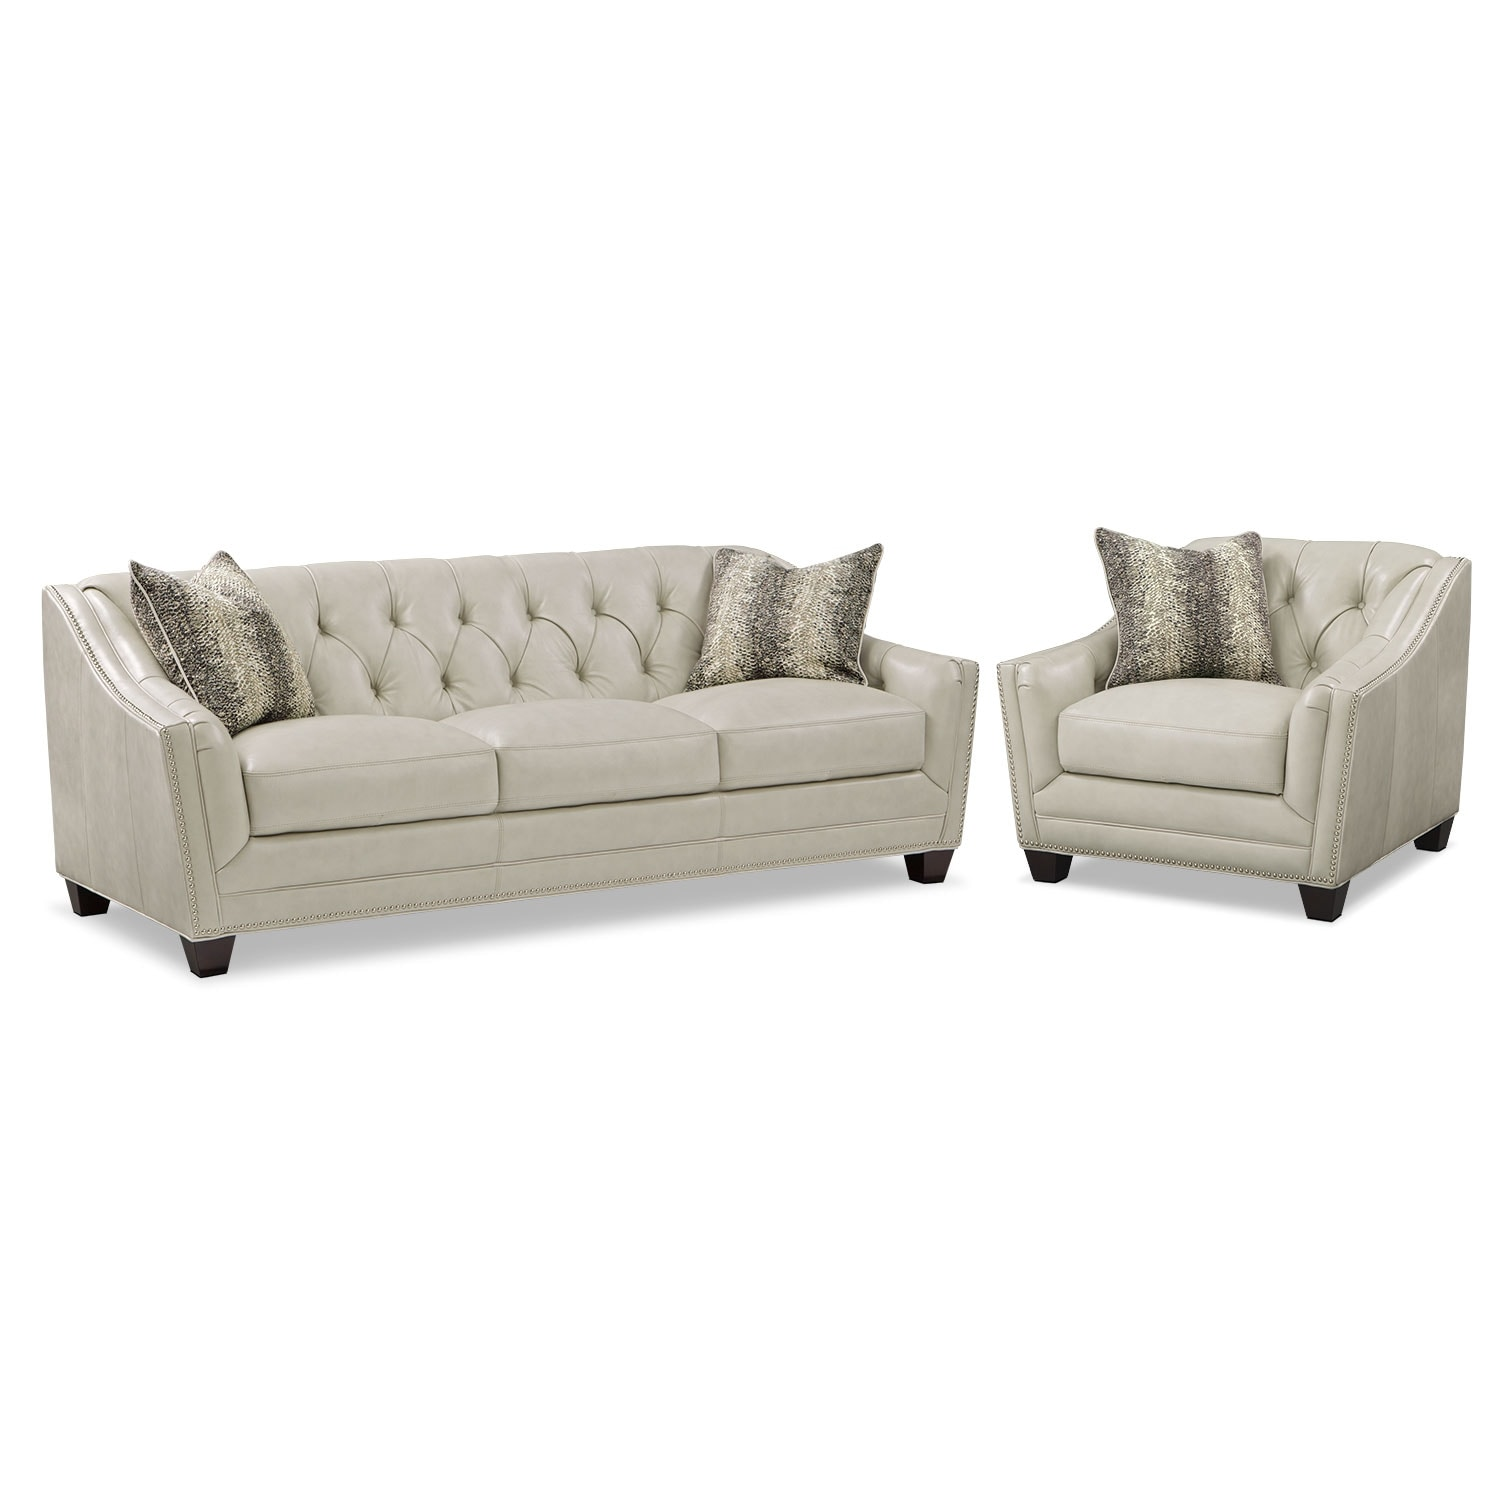 Living Room Furniture - Alexis Vanilla 2 Pc. Living Room w/ Chair